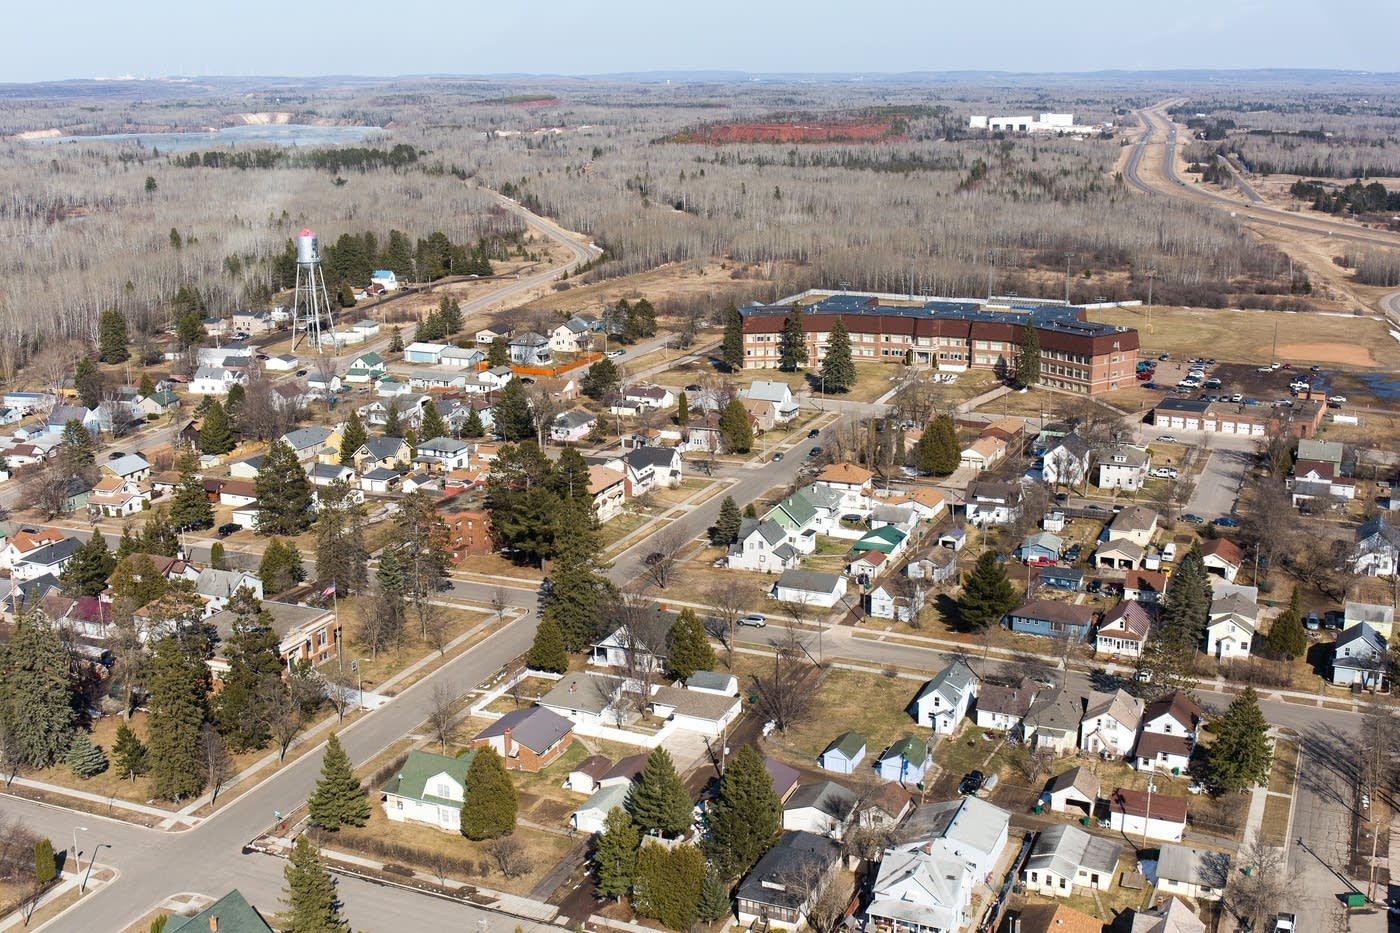 State, county and federal supervision didn't convey worry about Mesabi Academy